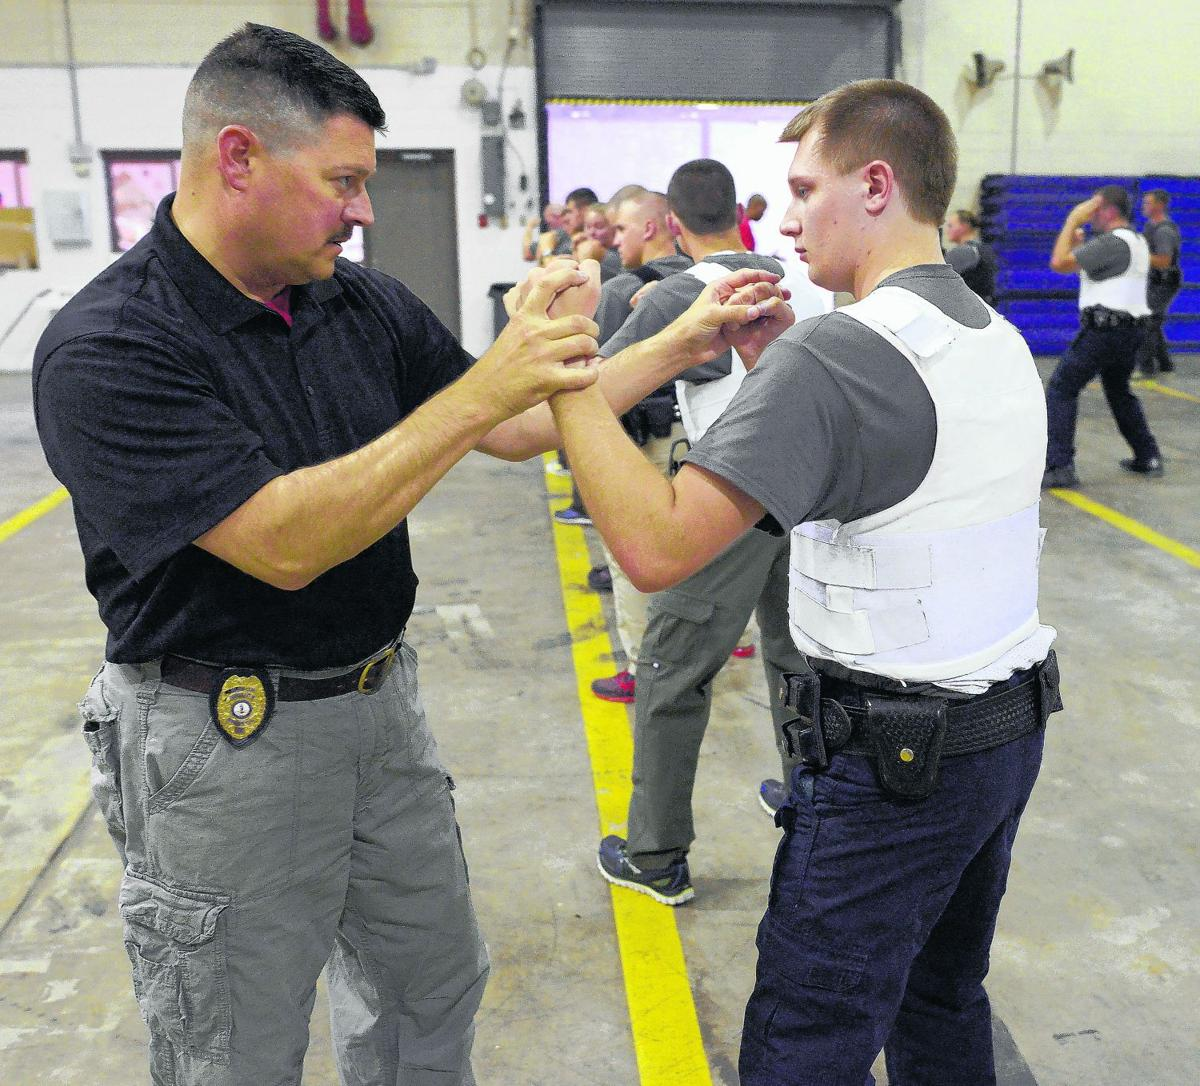 police use of deadly force pro and con Pros and cons of less-lethal self-defense posted on wednesday, june 19, 2013 by thoreau | 6 comments  when you use deadly force, legally, to kill an attacker, .